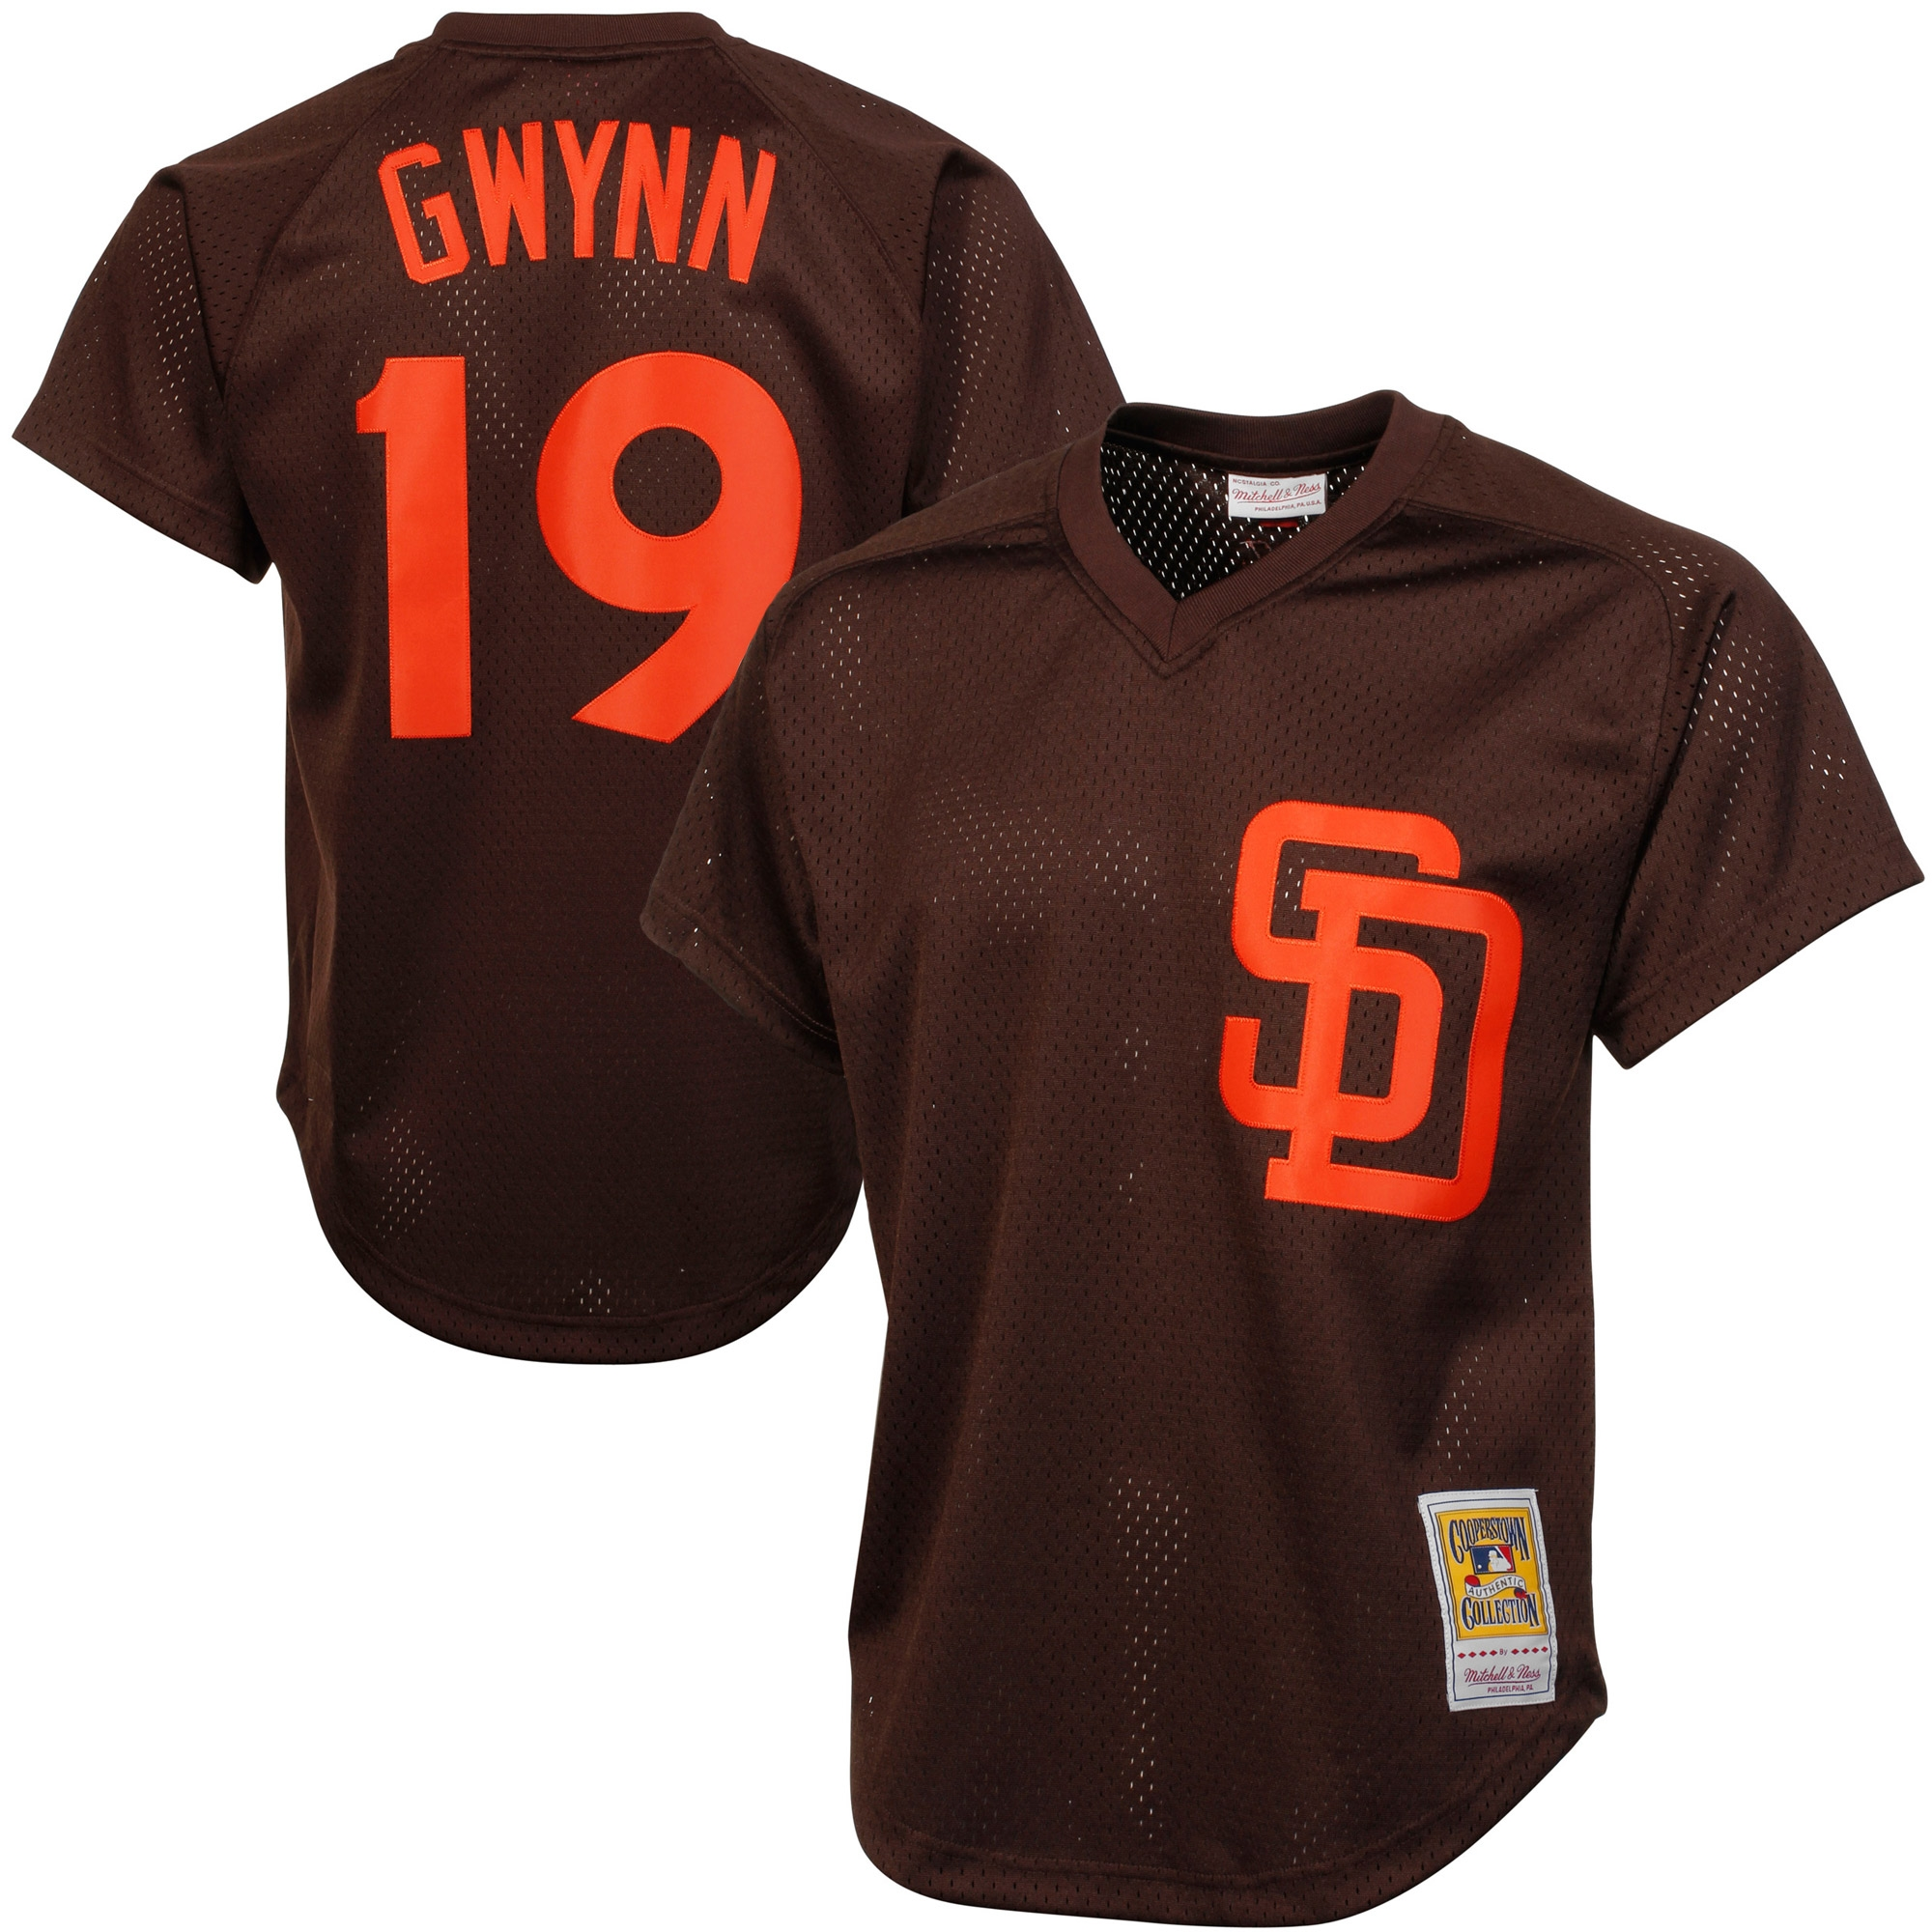 Majestic Tony Gwynn San Diego Padres 1985 Authentic Cooperstown Collection Batting Practice Jersey - Brown